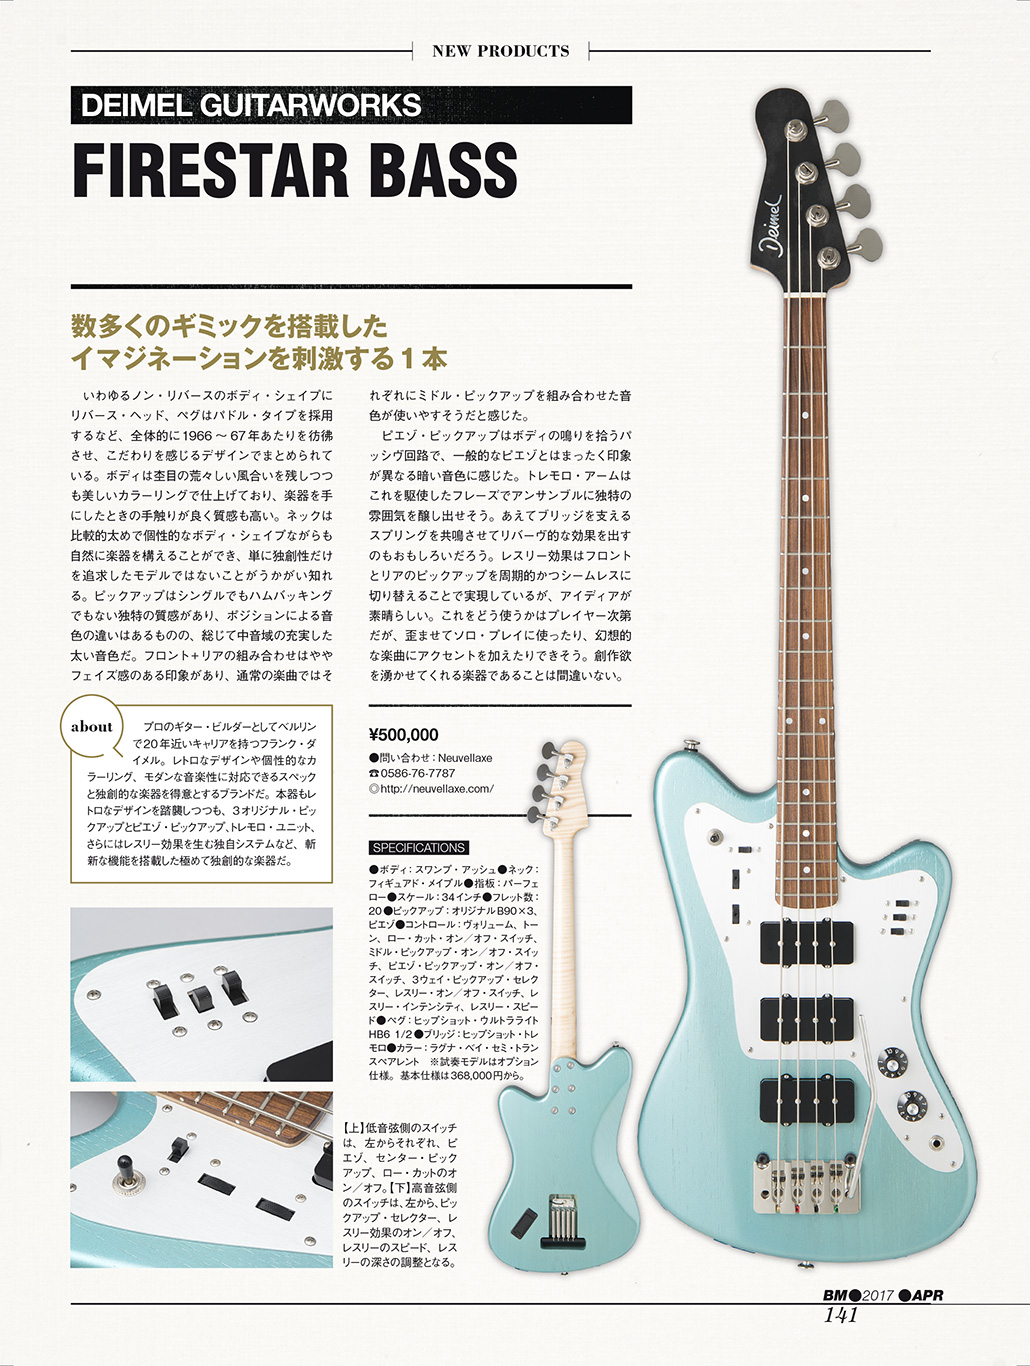 Deimel Firestar Bass japan press review